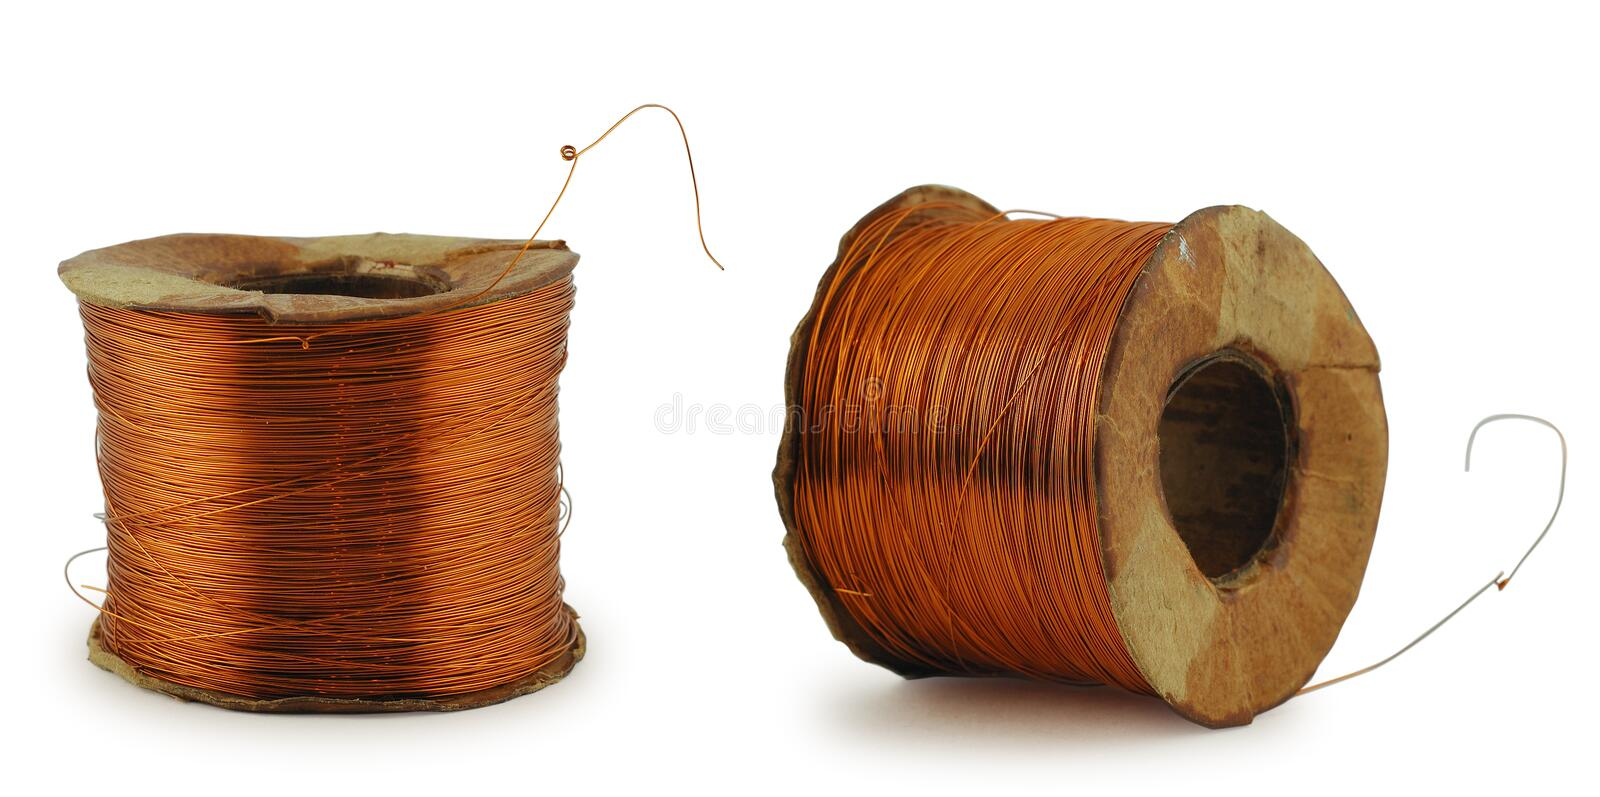 Copper wire roll. On white background, with clipping path royalty free stock photo